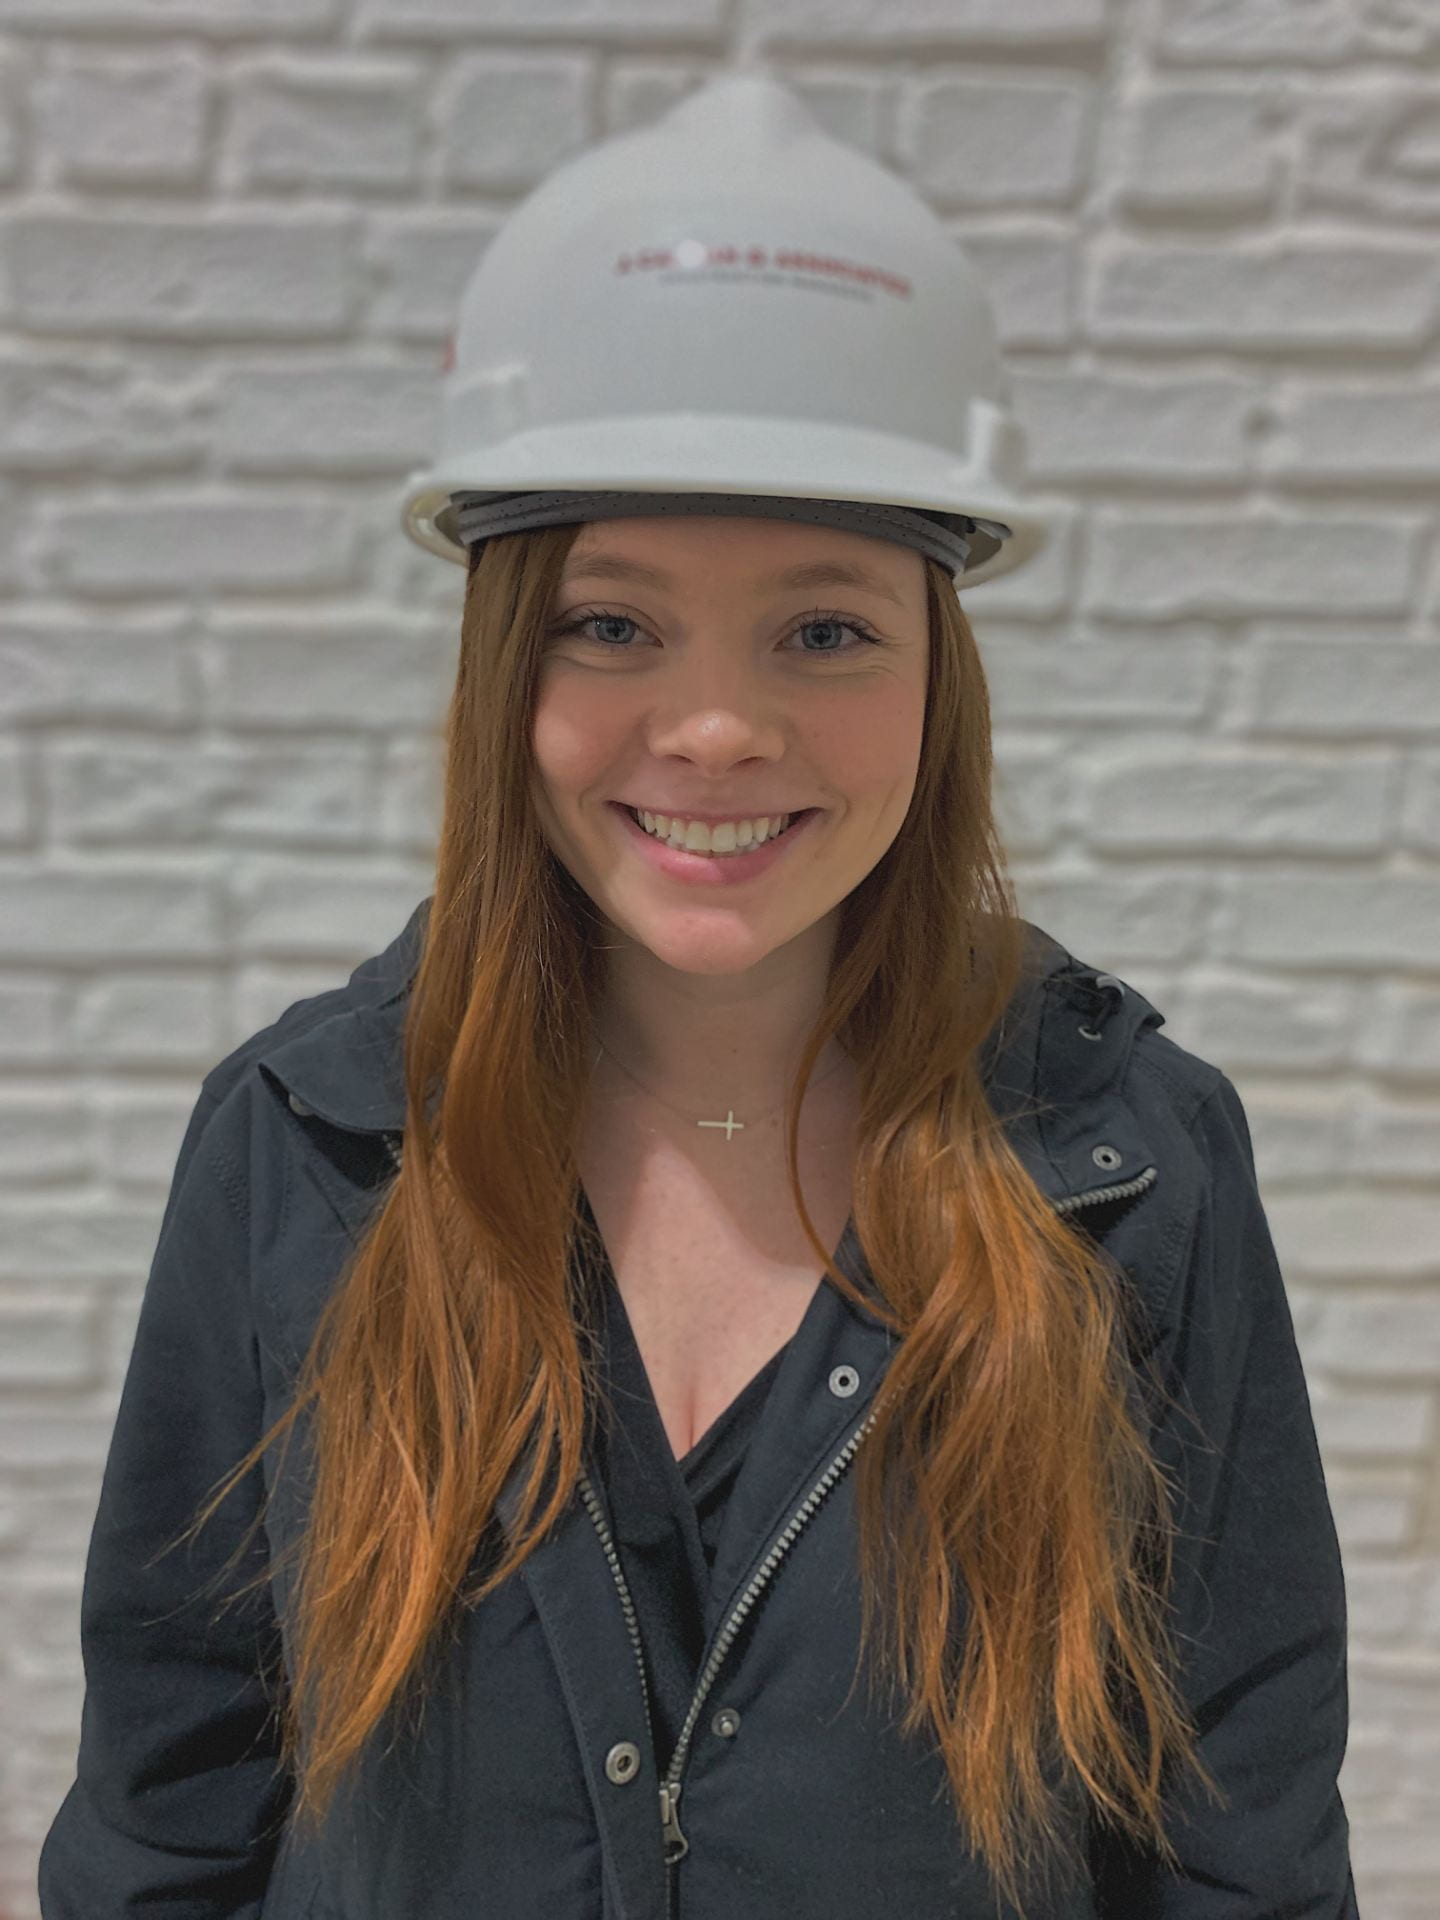 Julia with hard hat on